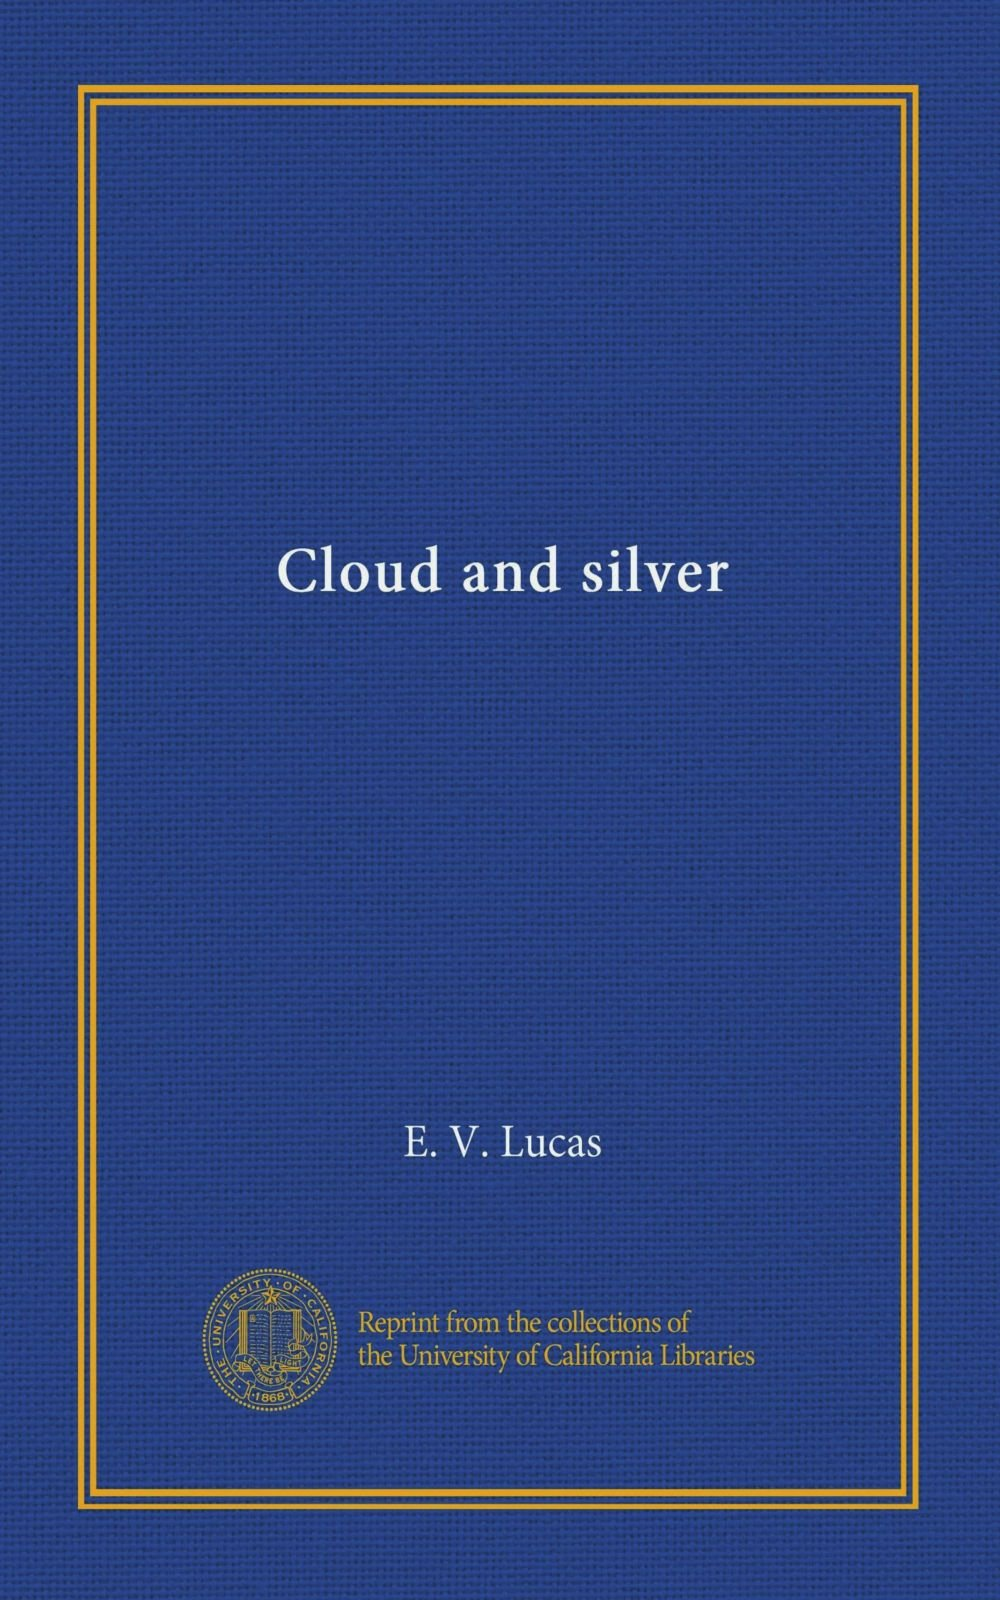 Cloud and silver PDF